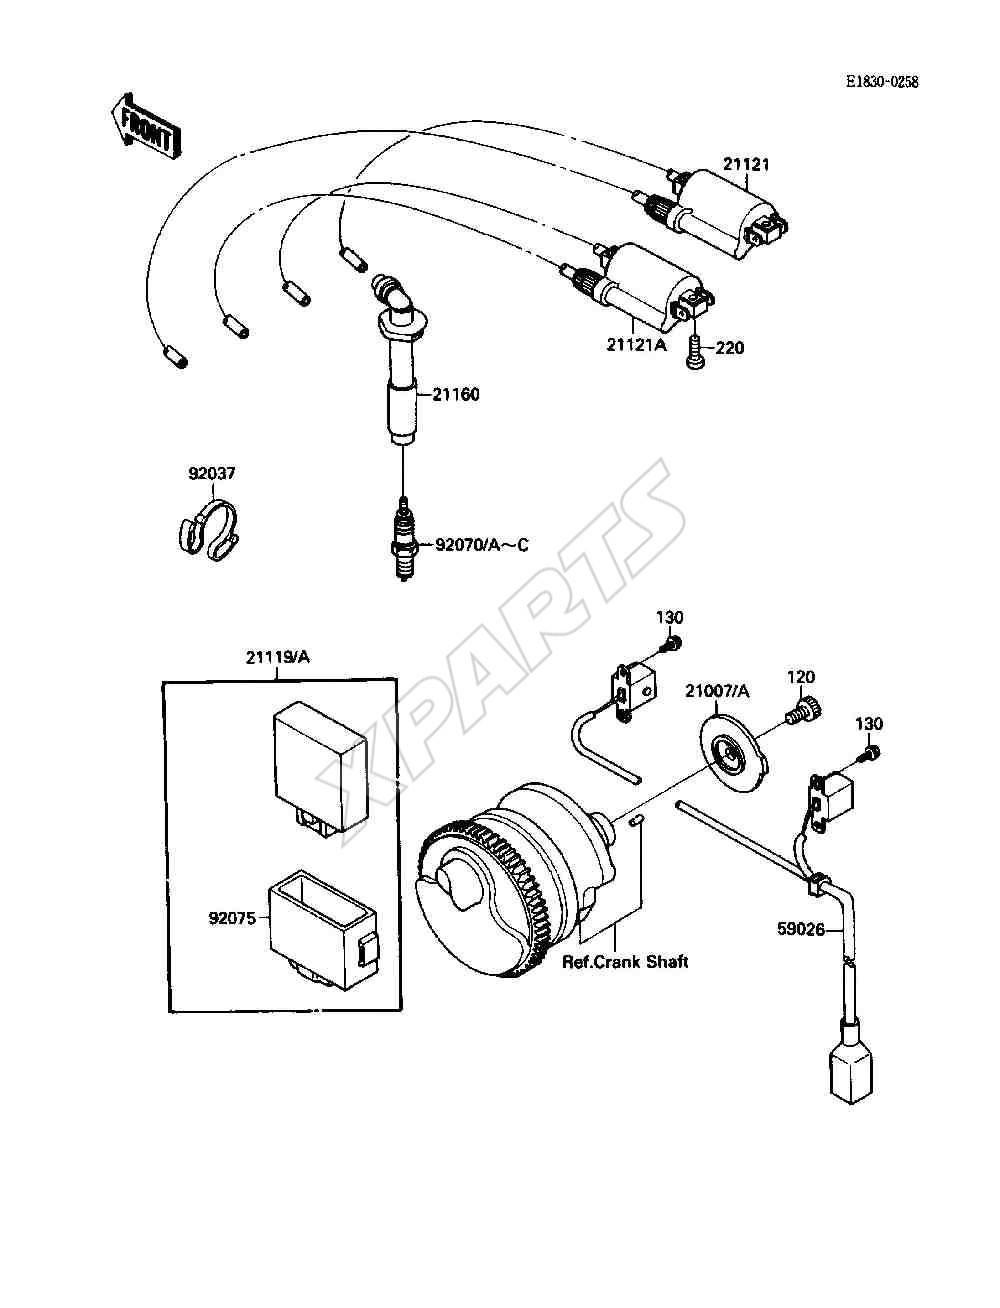 Kawasaki Ninja 750R (ZX750-F2) Ignition System (1988